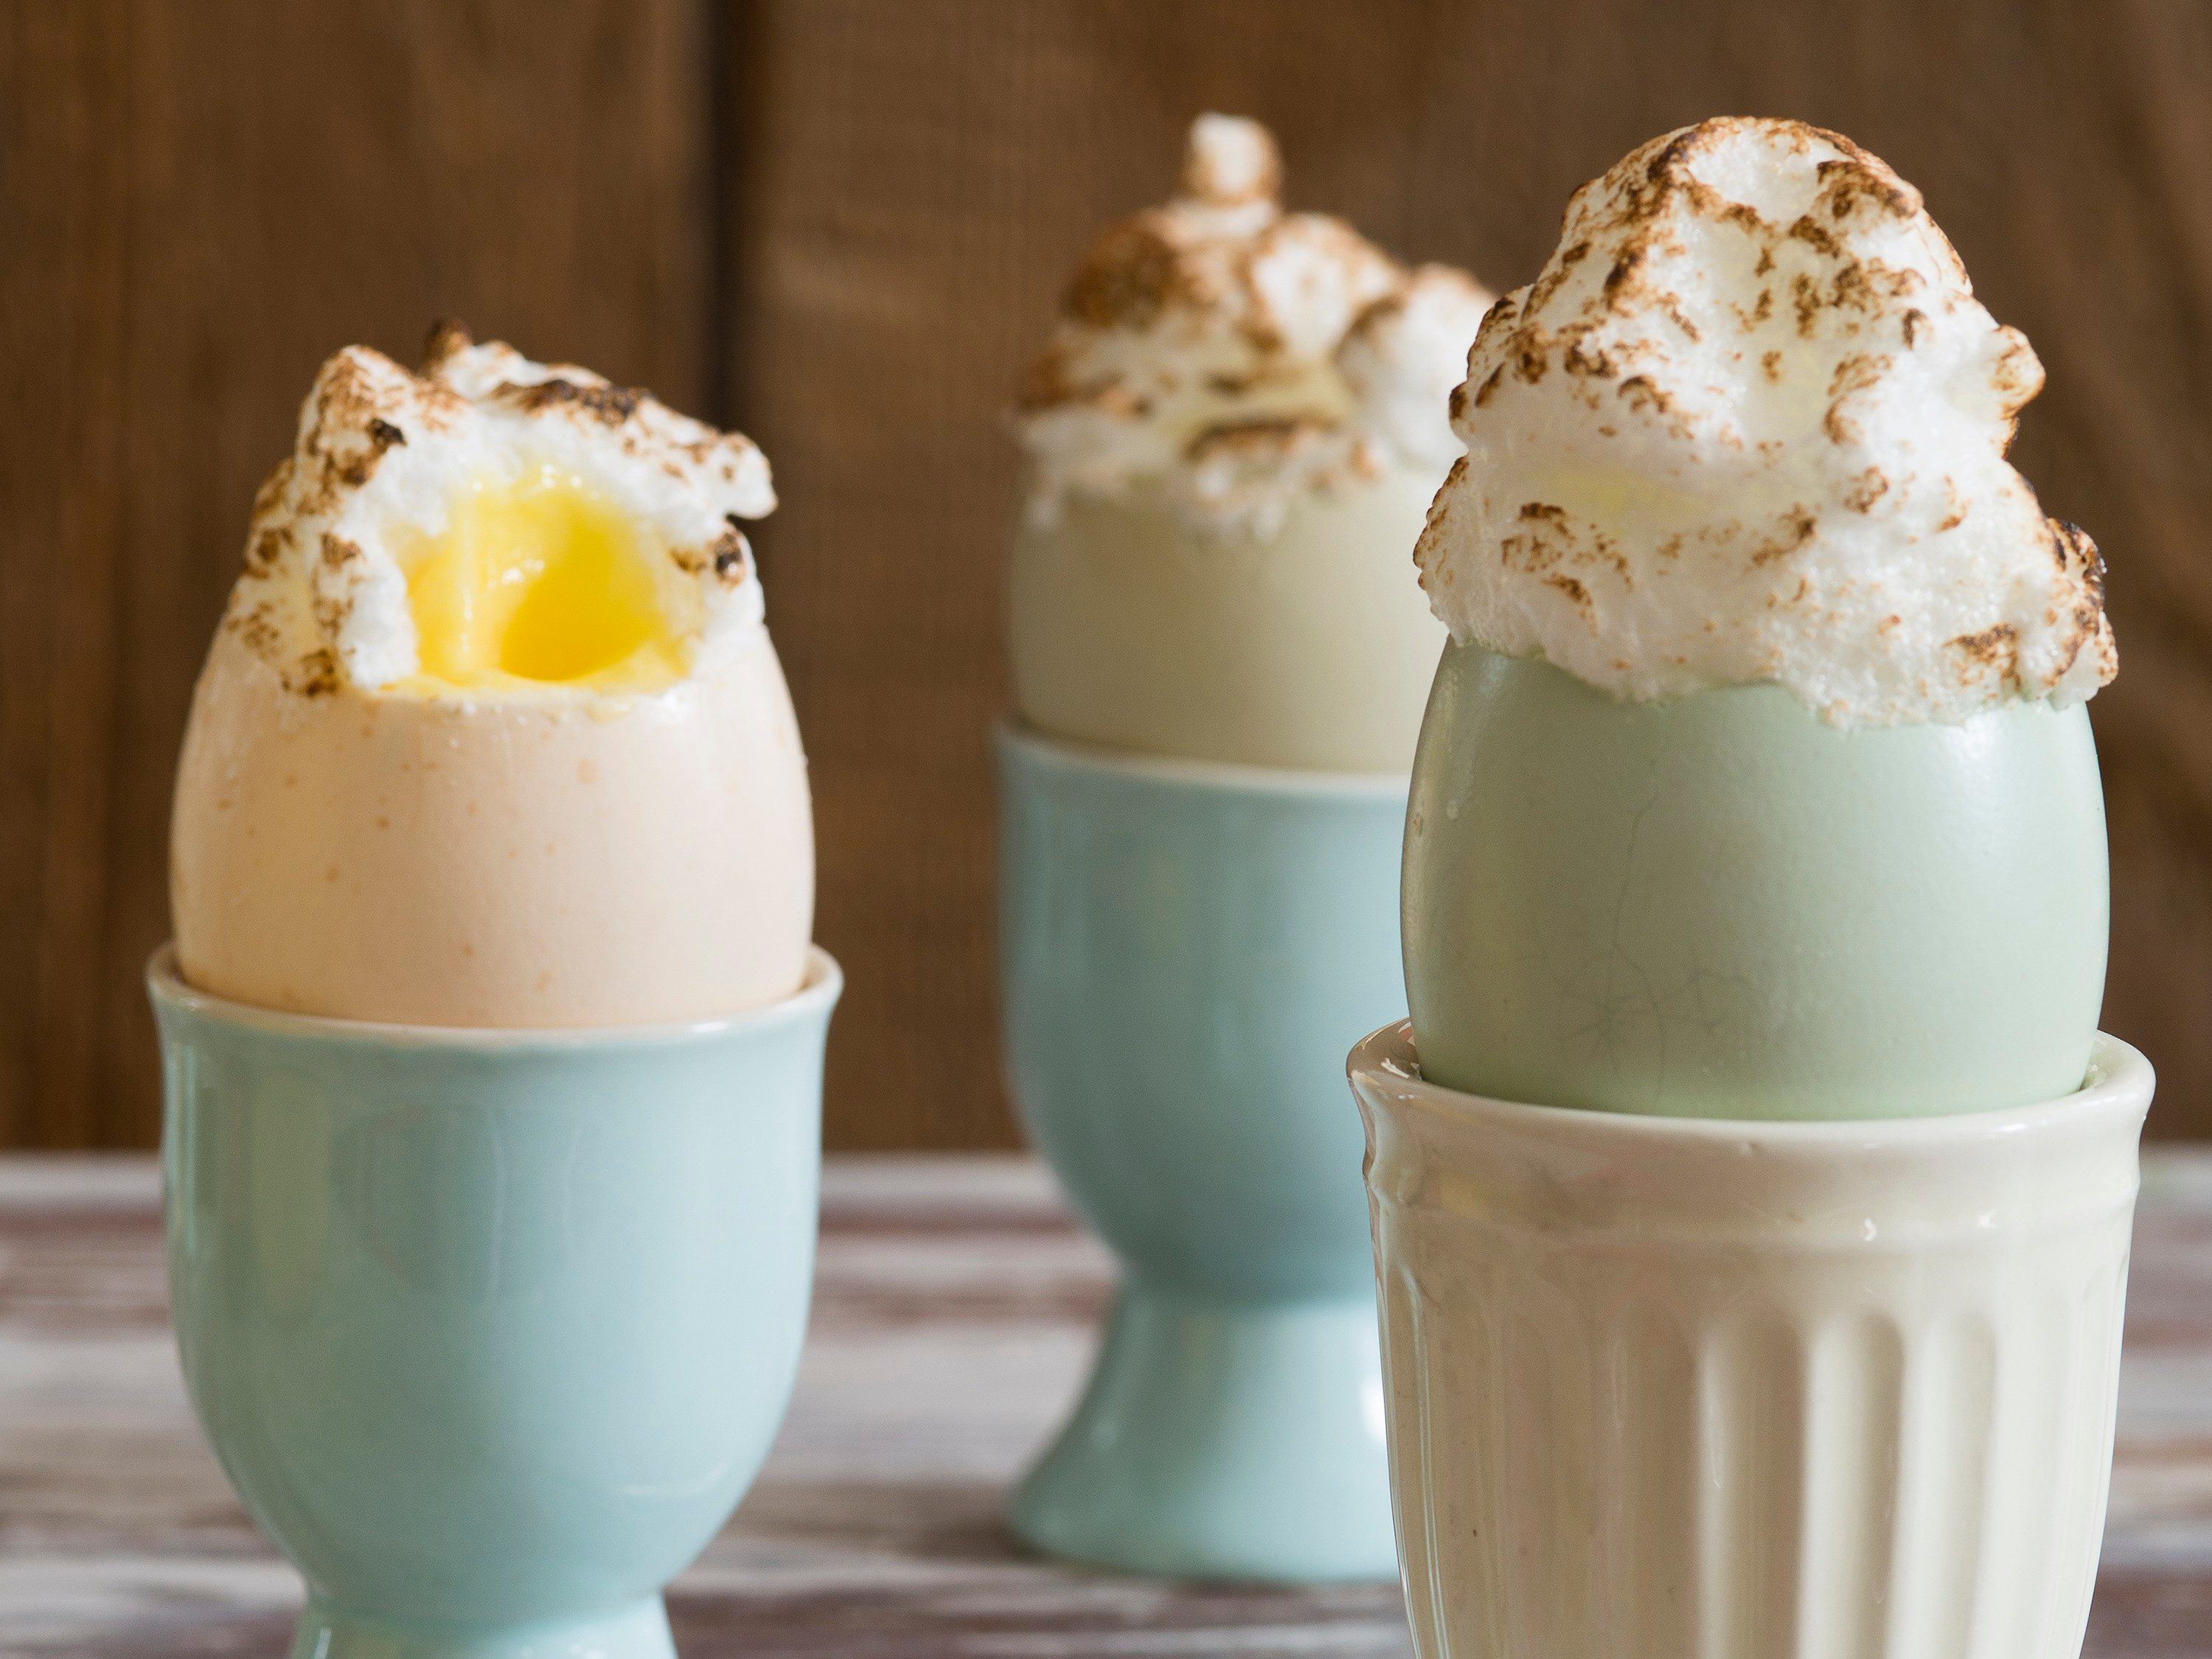 HARD-BOILED EGGS: My Way